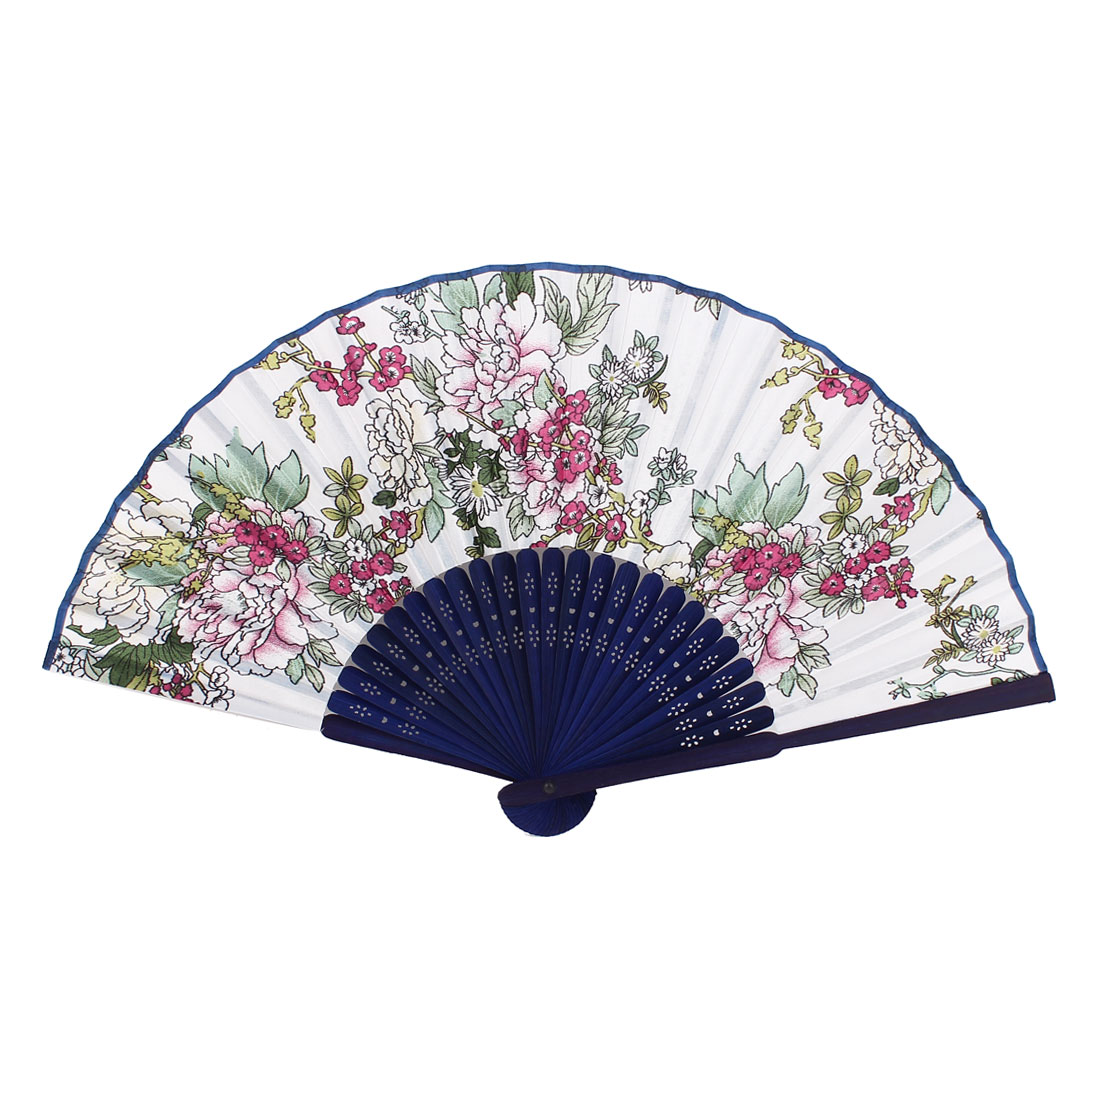 Ladies Hollow Out Frame Blooming Flower Print Folded Hand Fan White Fushcia